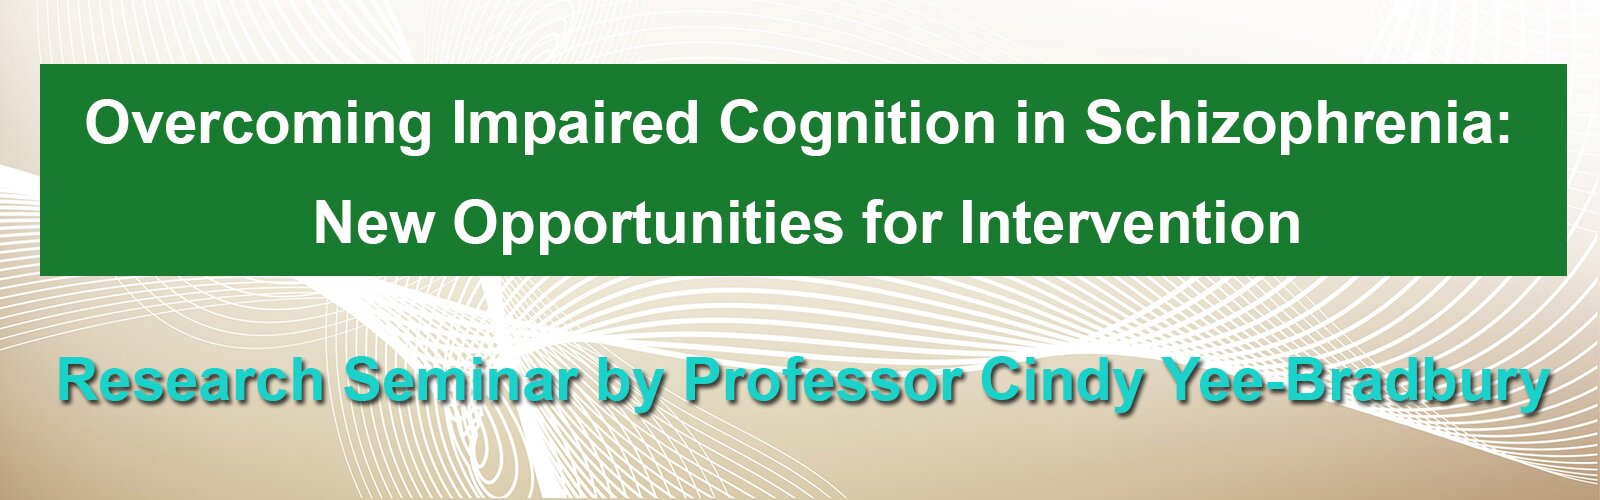 Overcoming Impaired Cognition in Schizophrenia: New Opportunities for Intervention